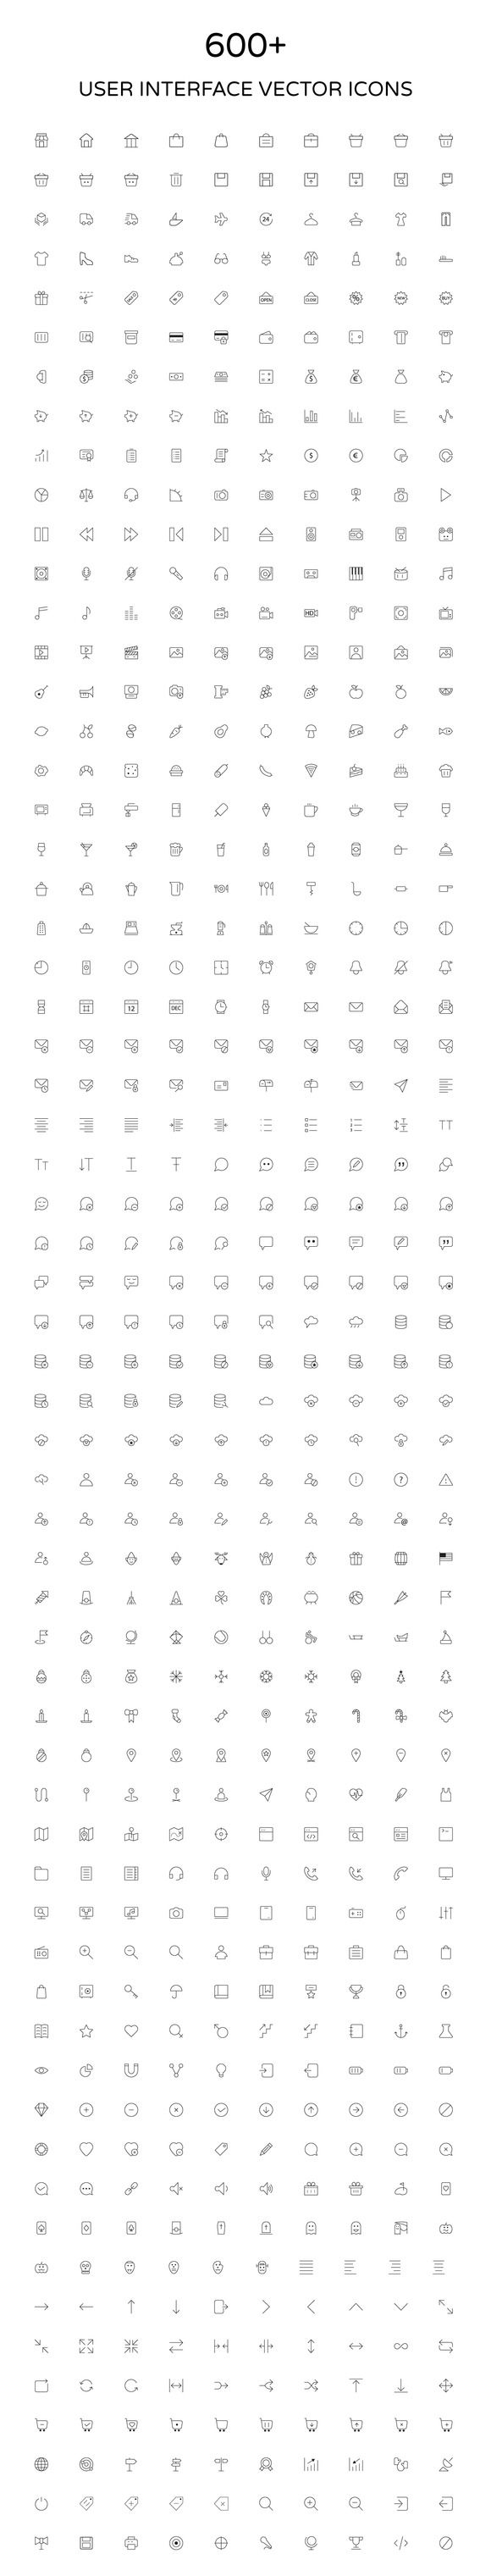 User Interface Outline Vector Icons by Creative Stall on @creativemarket